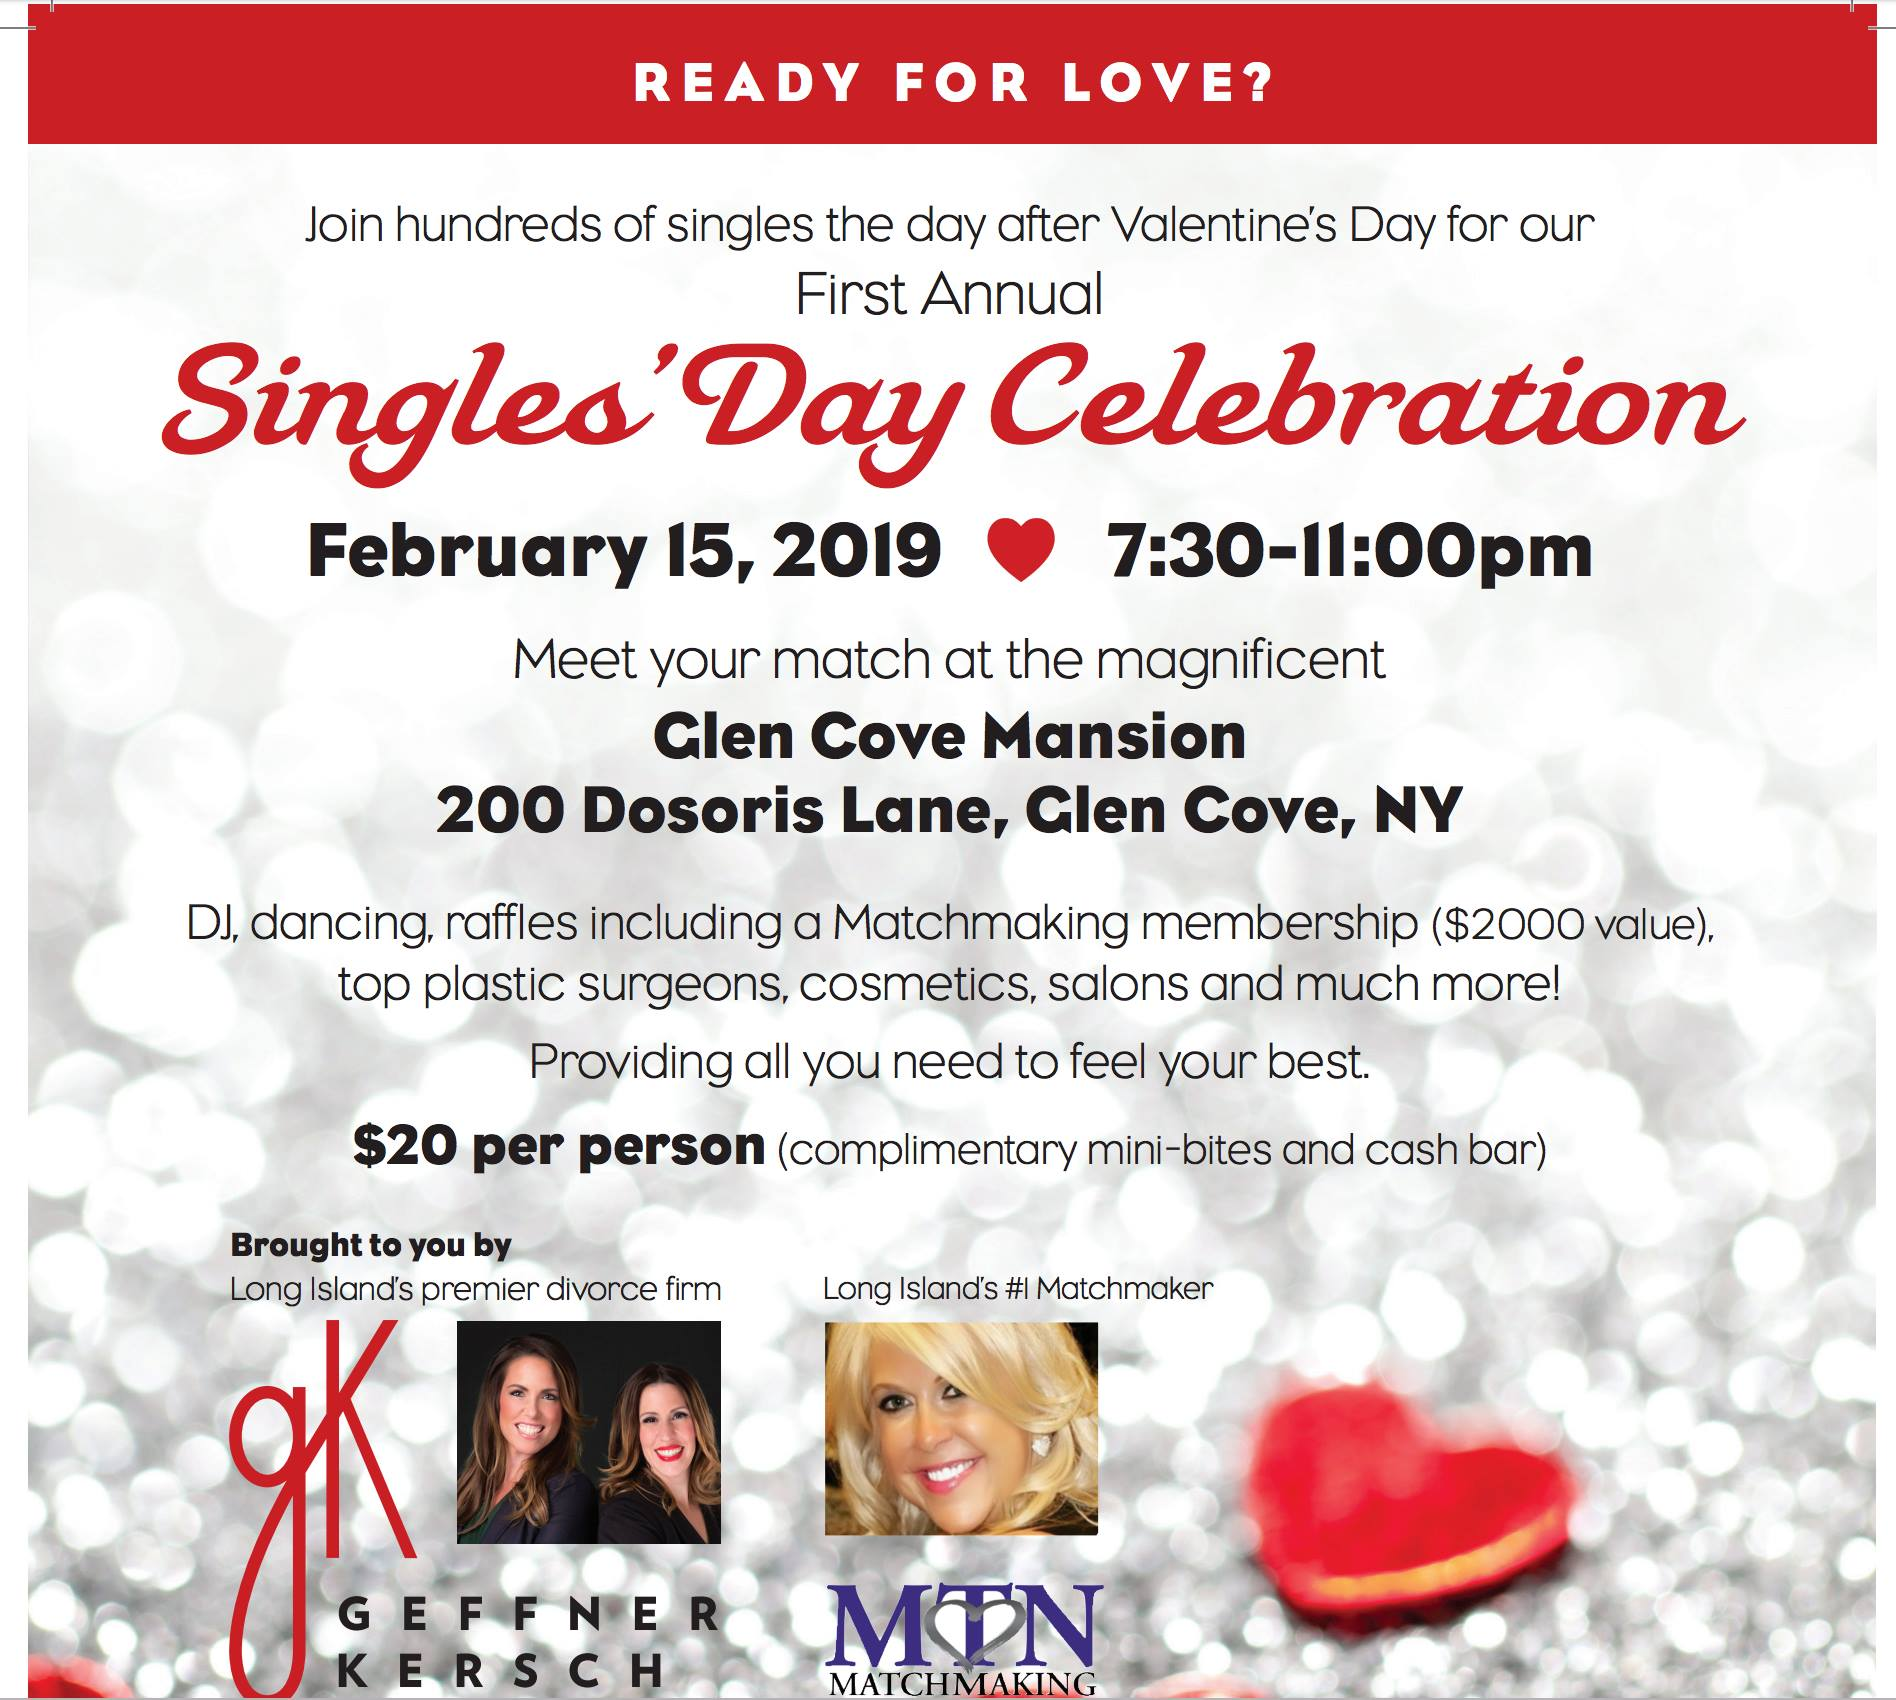 Special Announcement: First Annual Singles' Day Celebration